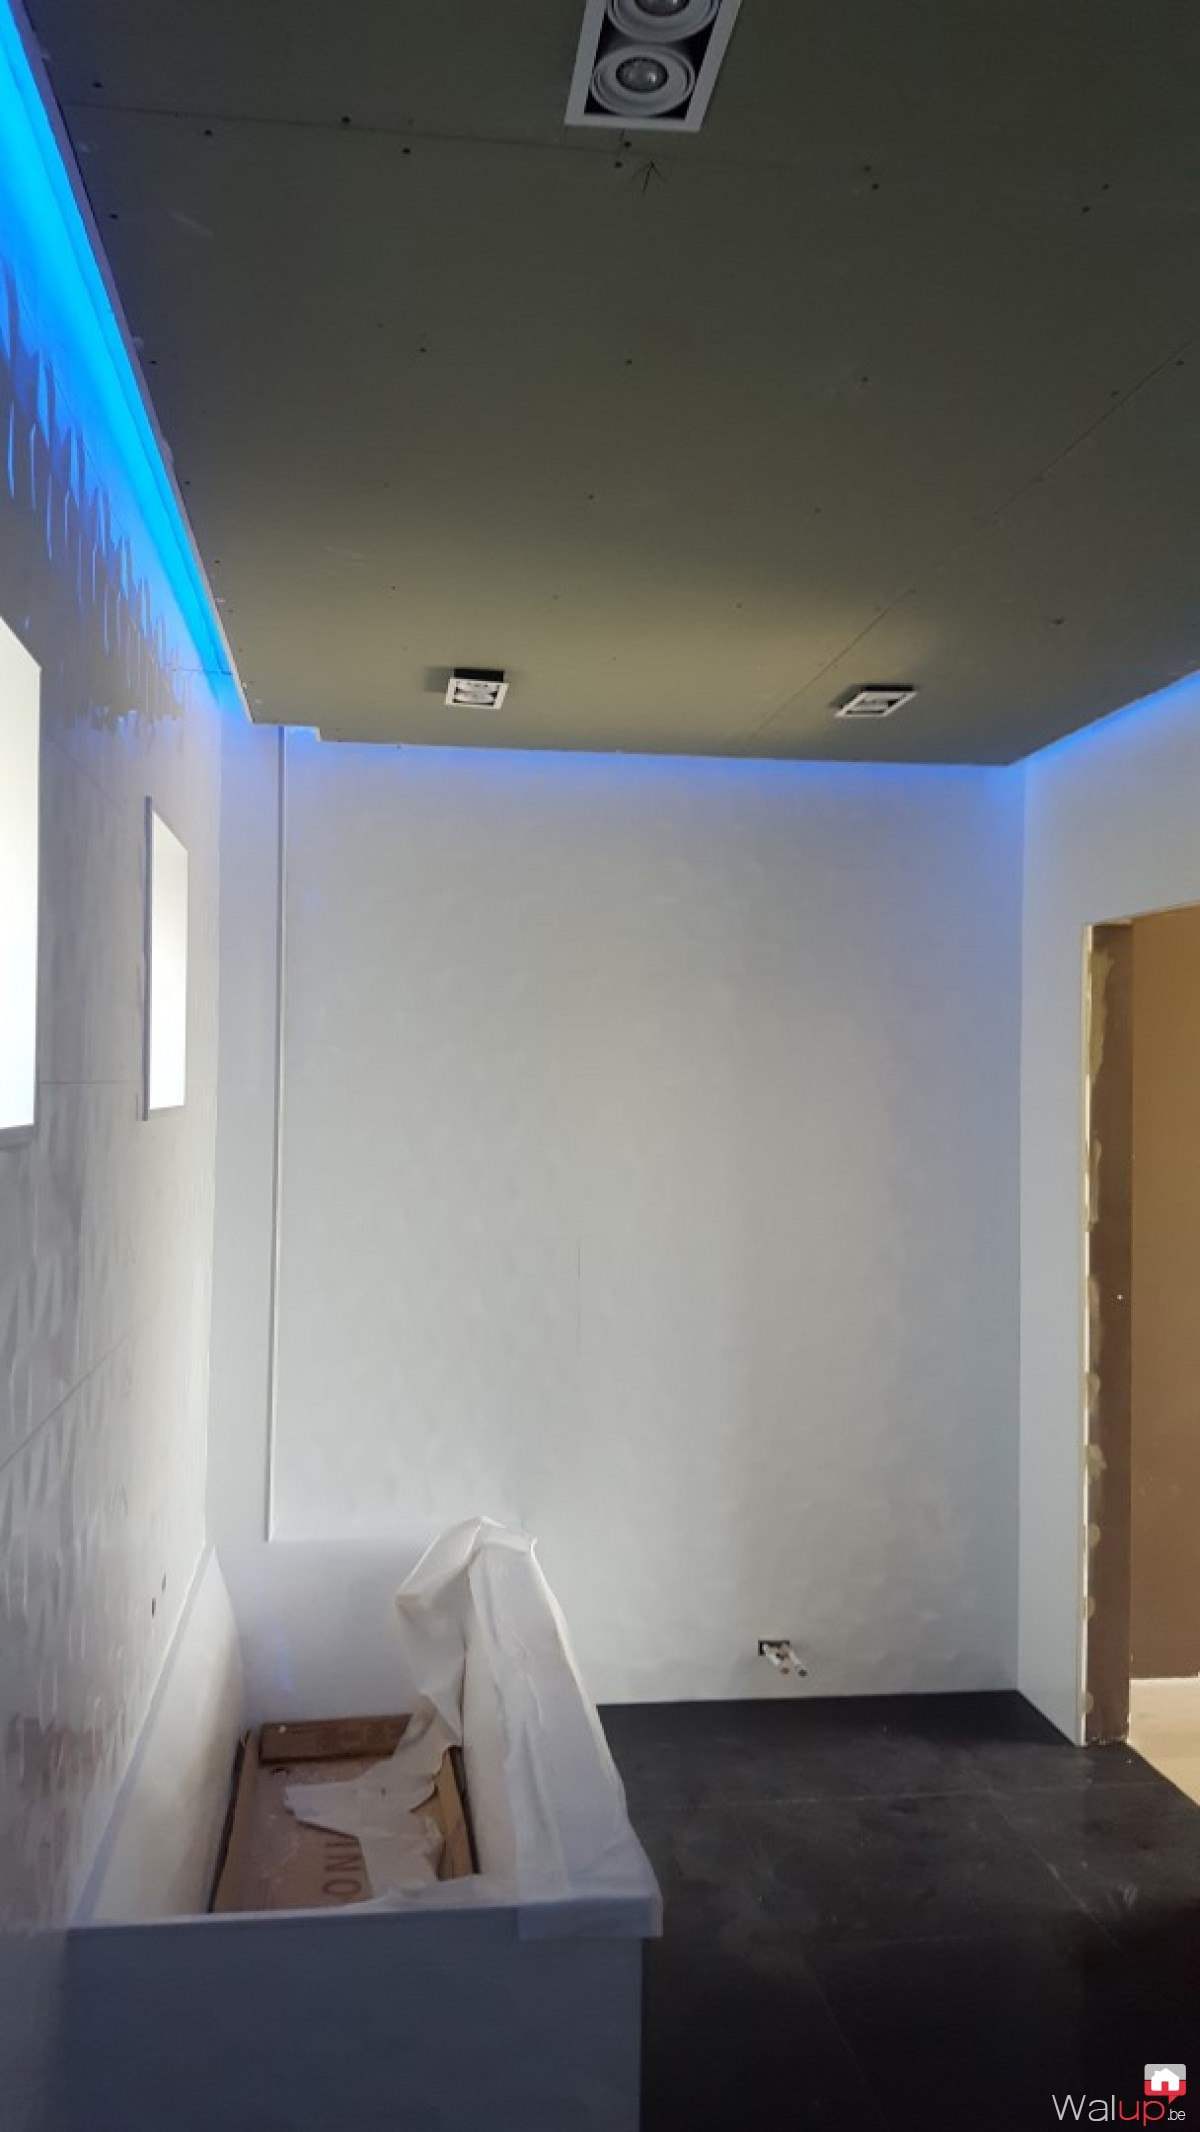 Eclairage int rieur et plafond d coratif mouscron par for Realisation faux plafond decoratif